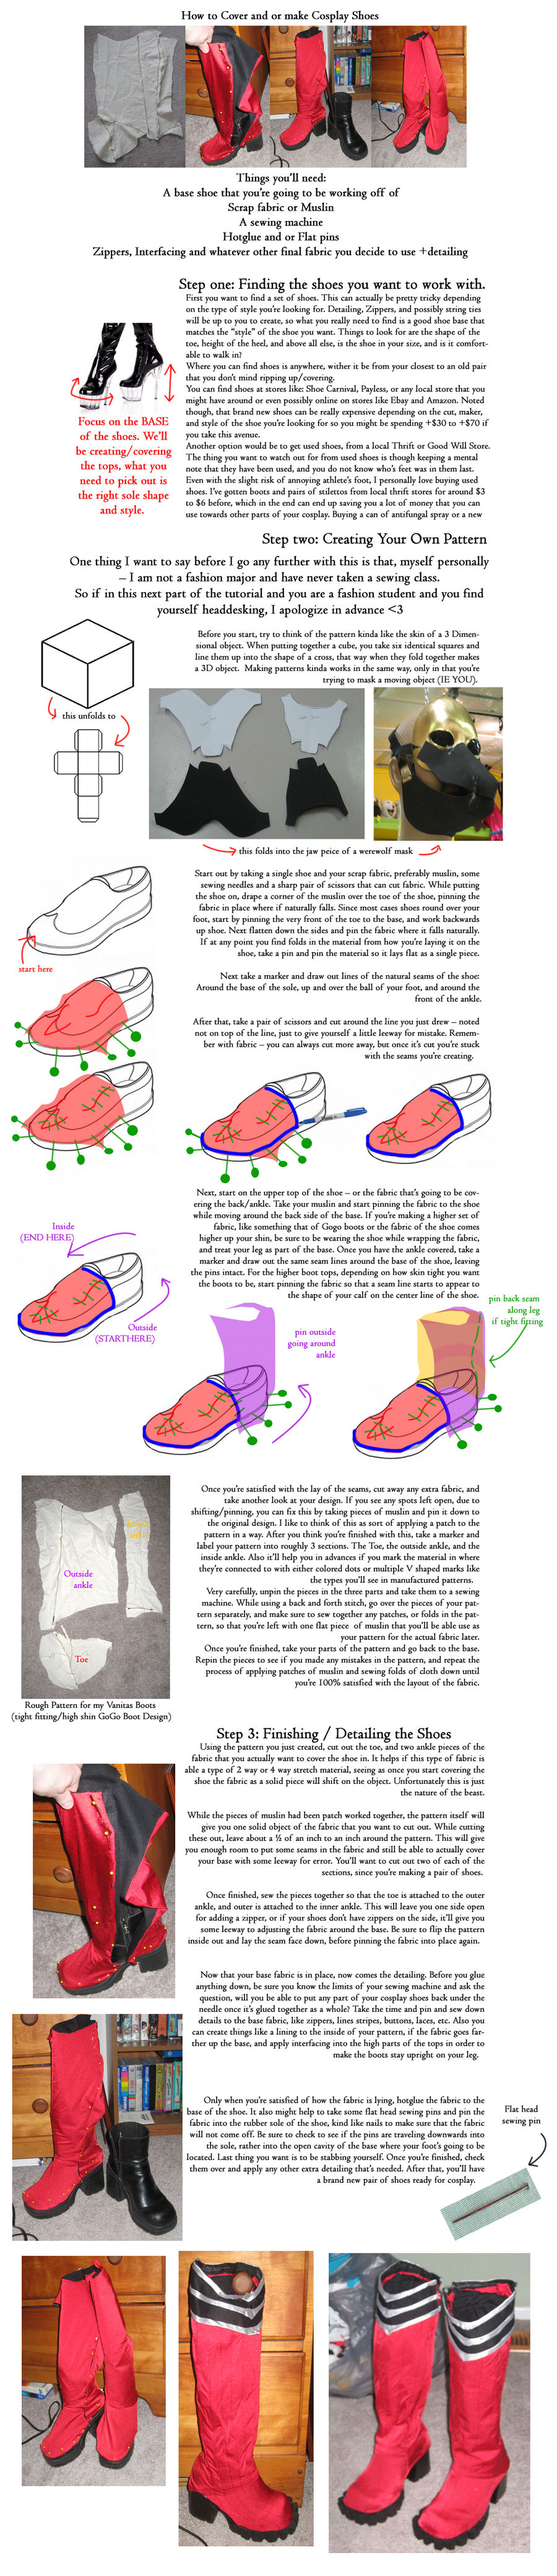 How To Cover Cosplay Shoes